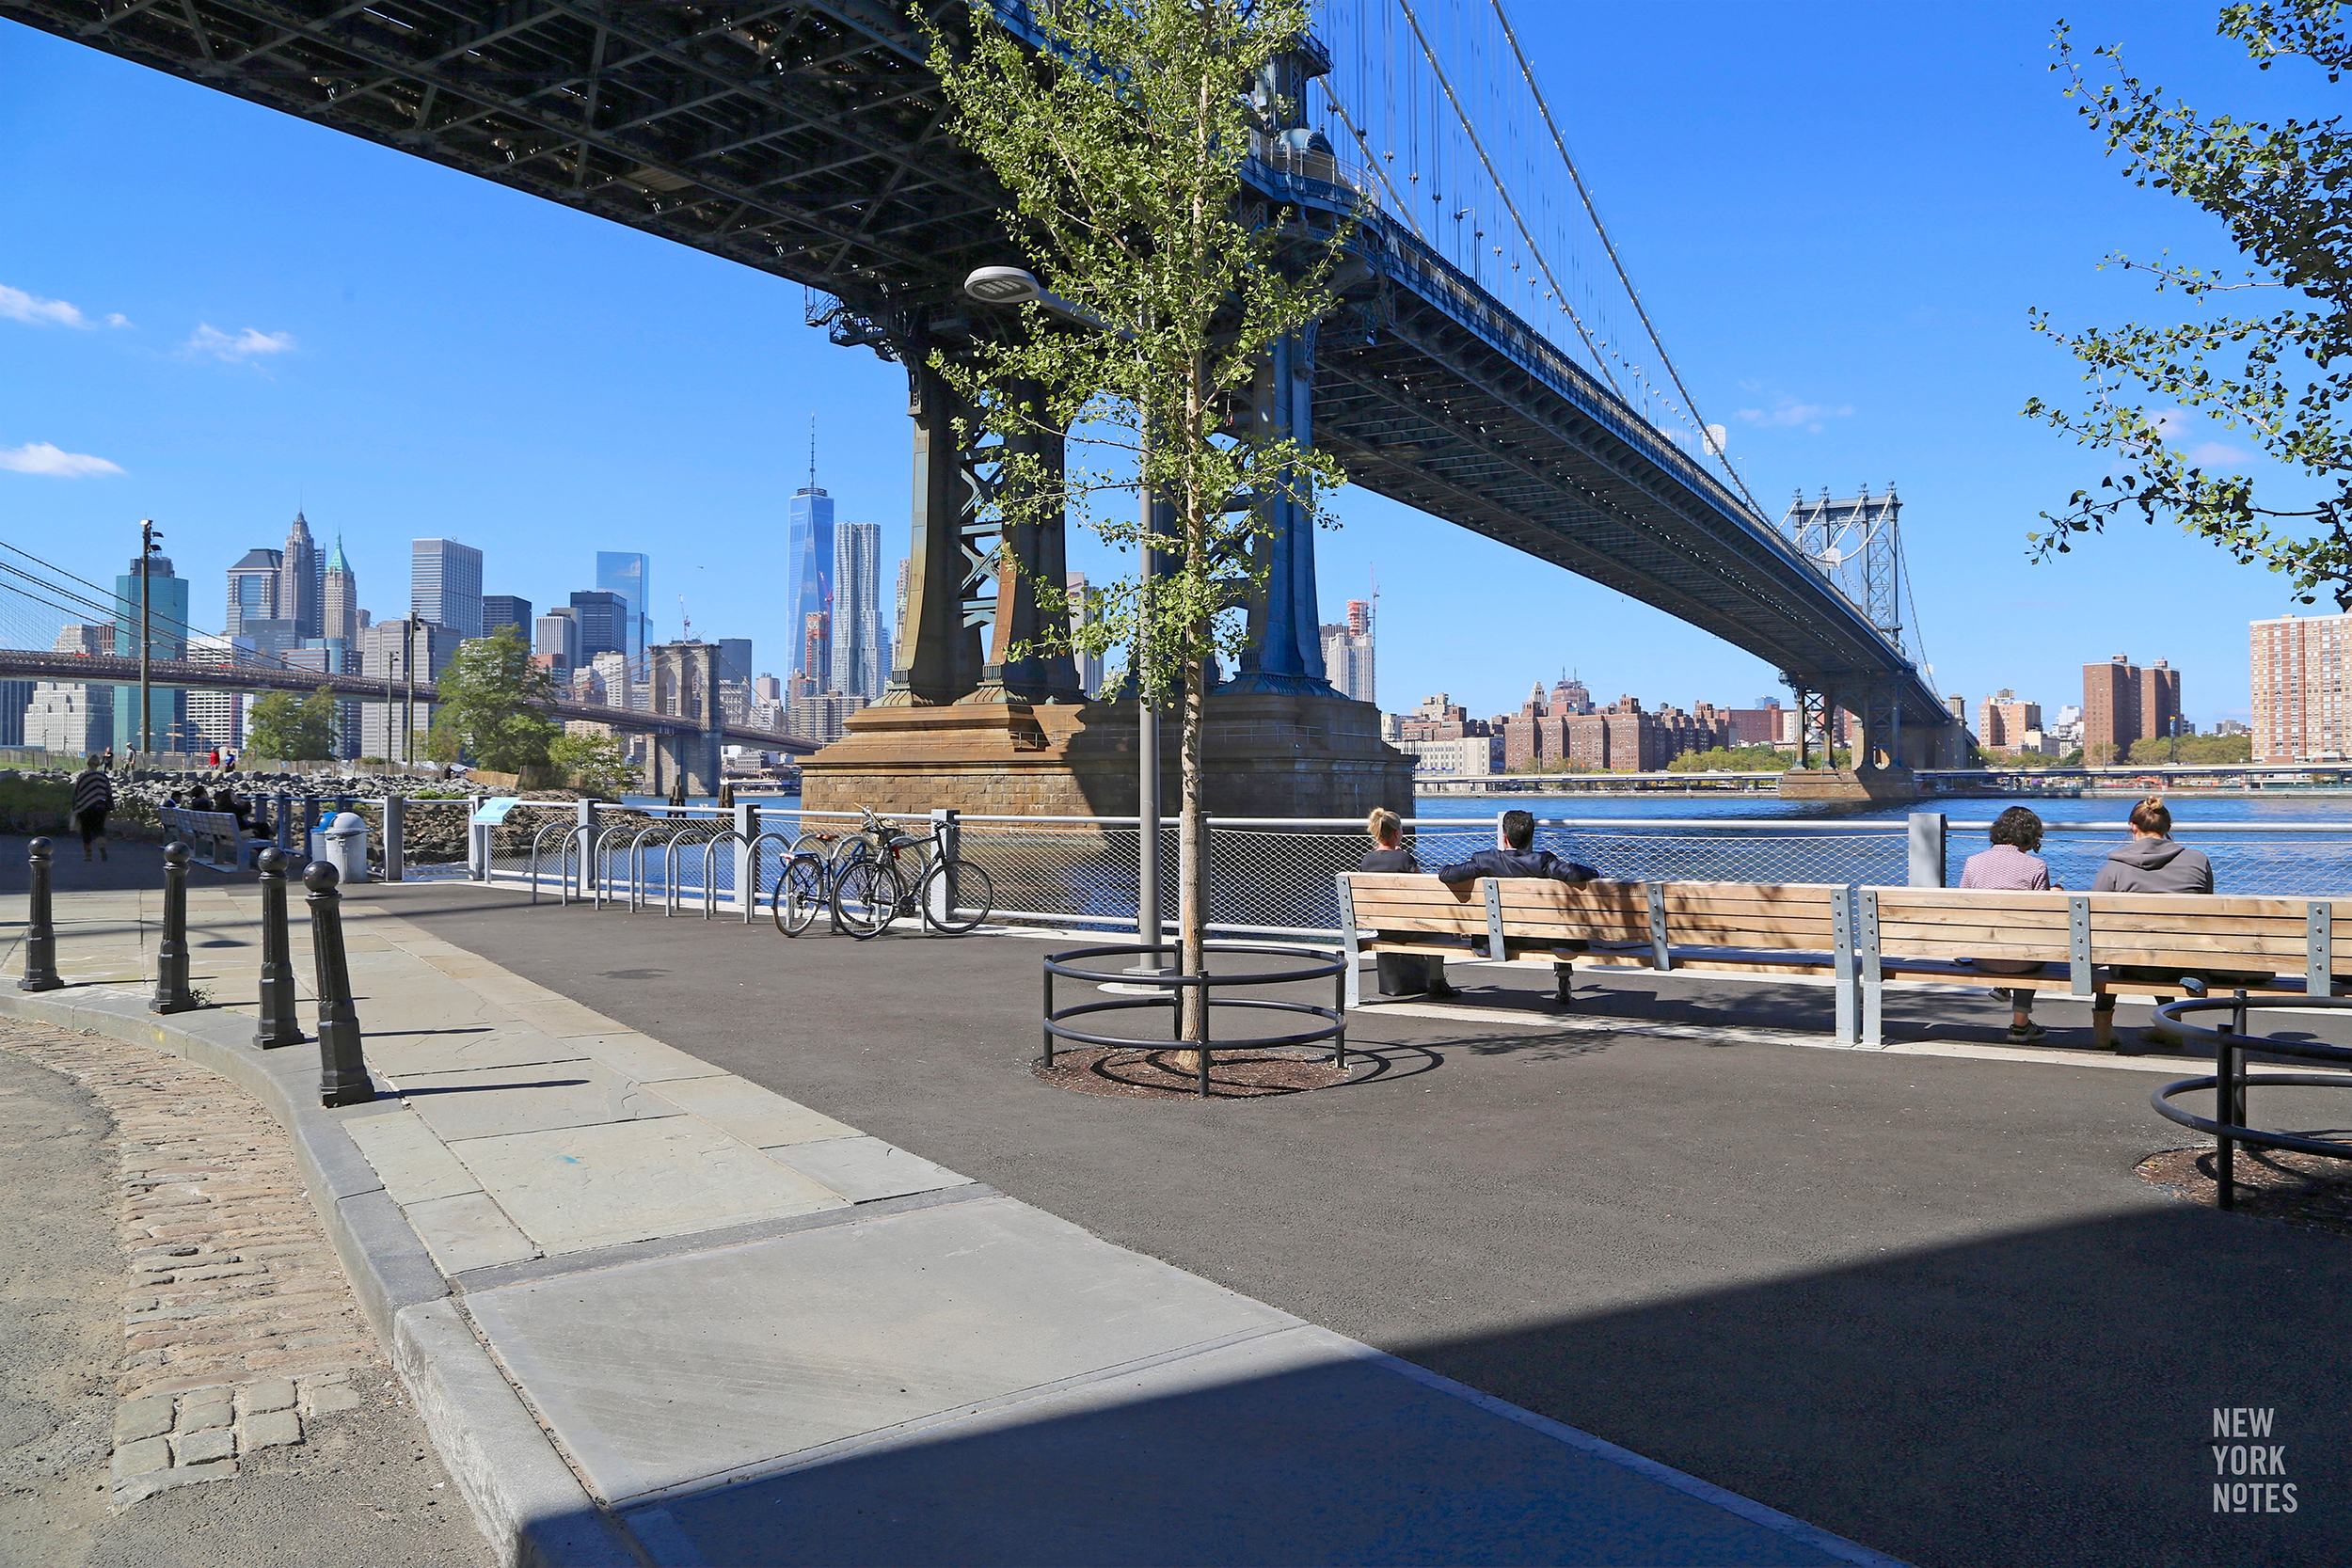 jay_street_manhattan_bridge_bridge_brooklyn_bridge_park.jpg